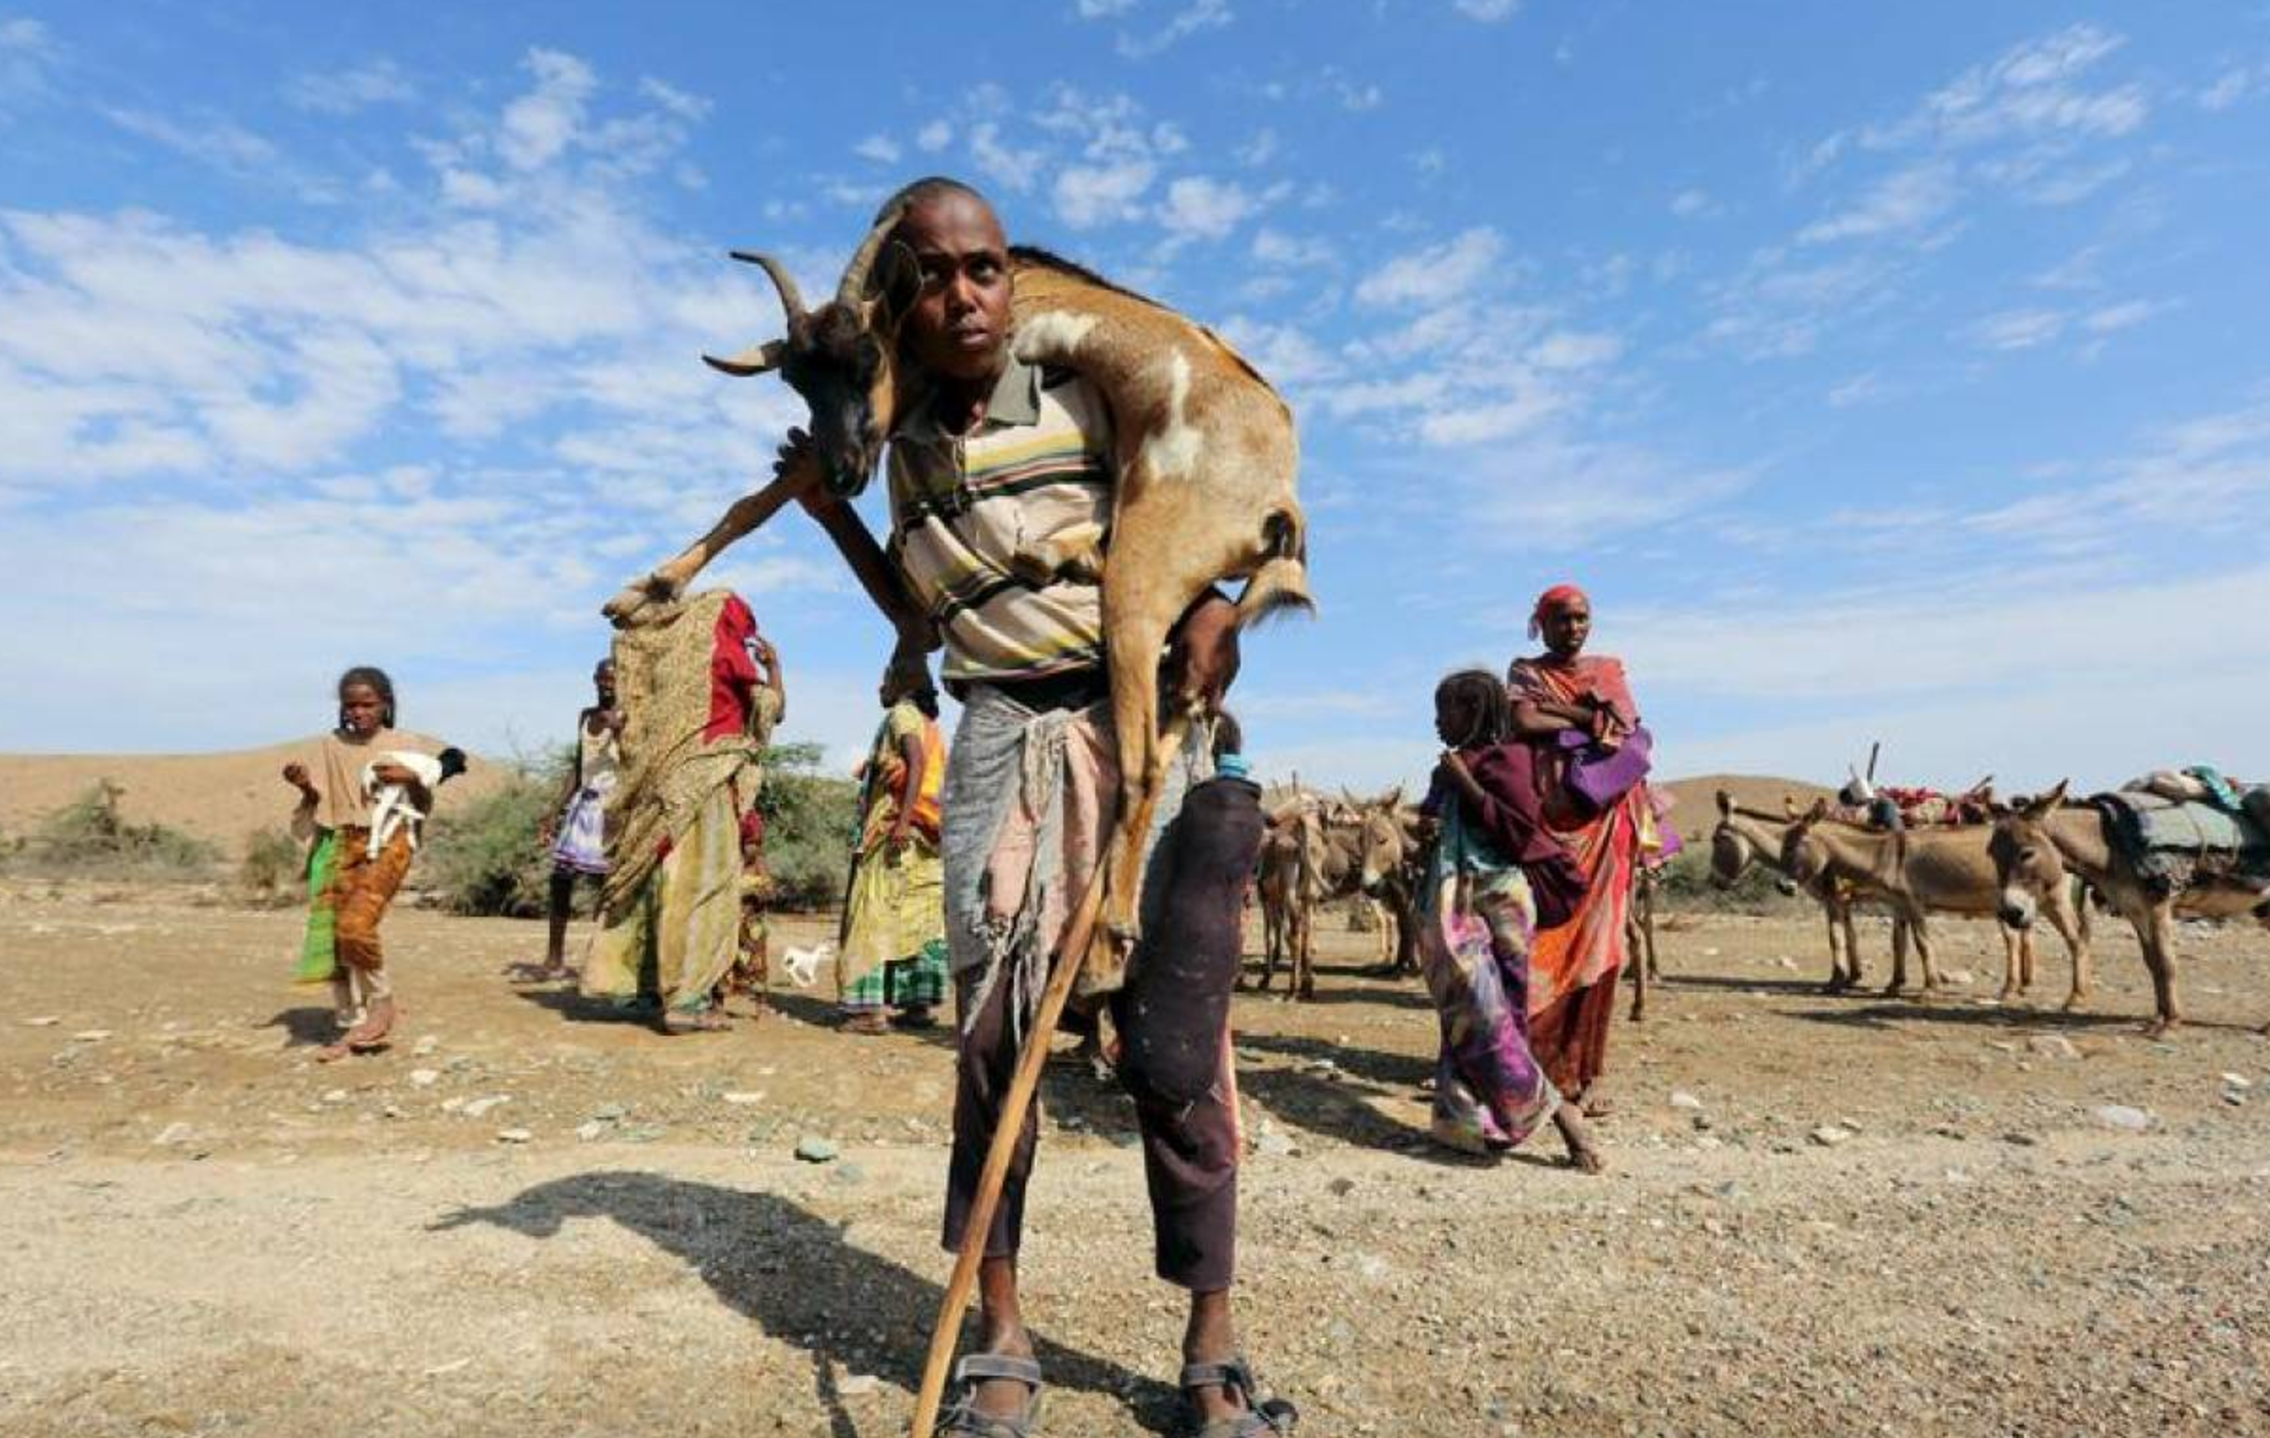 U.N. Warns of Famine Risk in Somalia Amid Worsening Drought – Thomson Reuters Foundation (image)